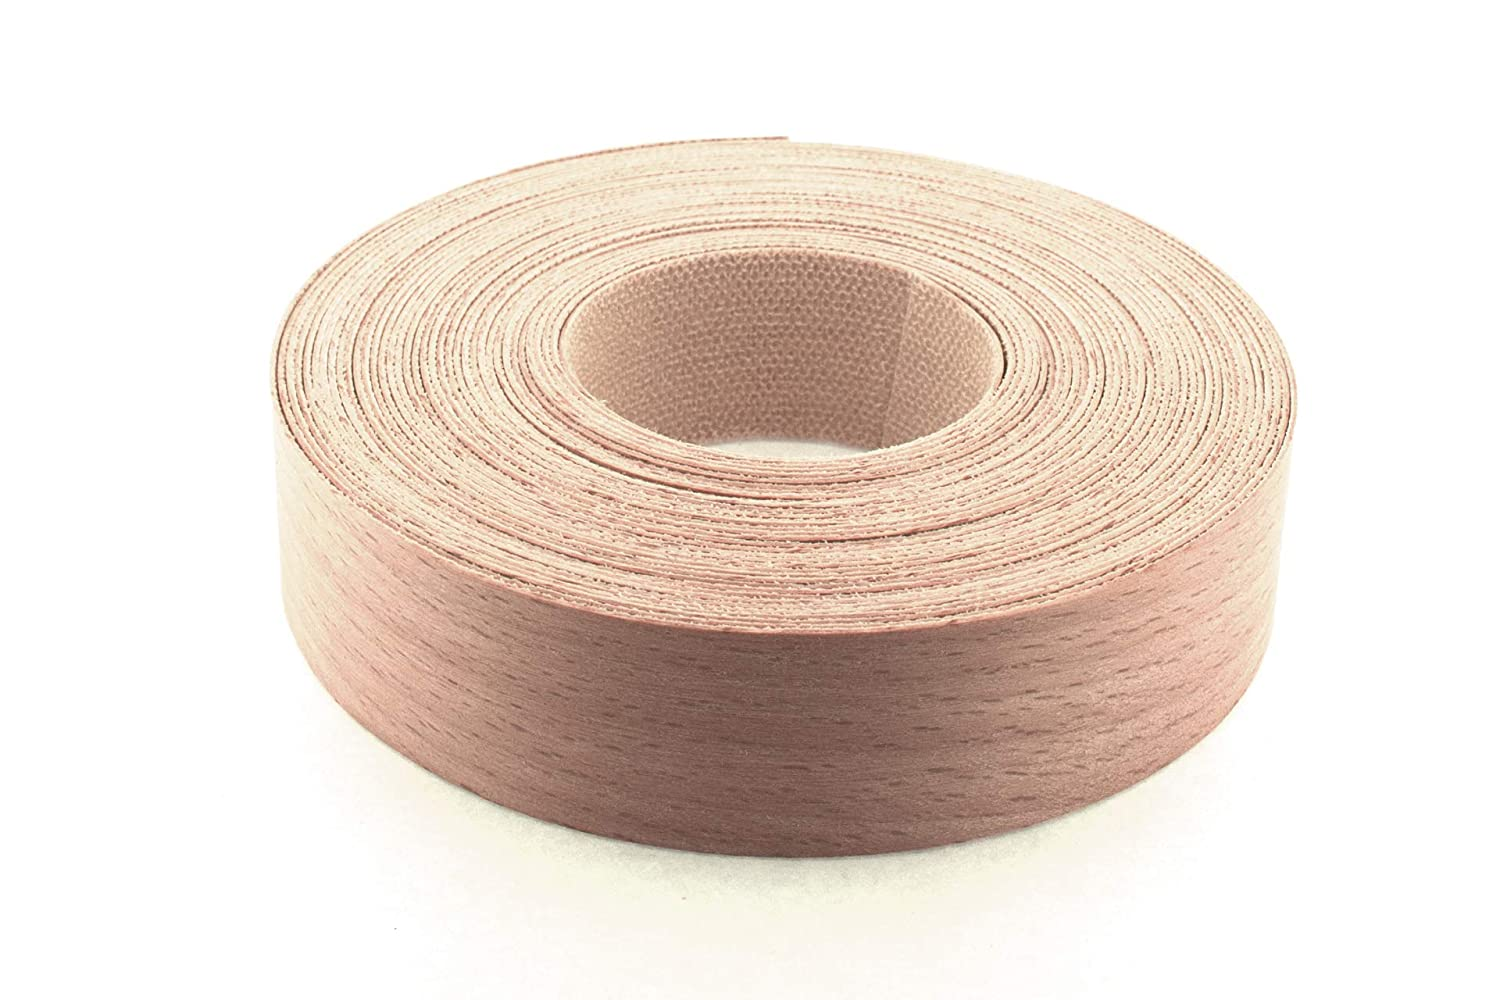 22mm Beech Veneer Edging - 7.5m Roll - Pre-Glued Iron-On Real Wood Edging Tape for Easy DIY Application WoodPress